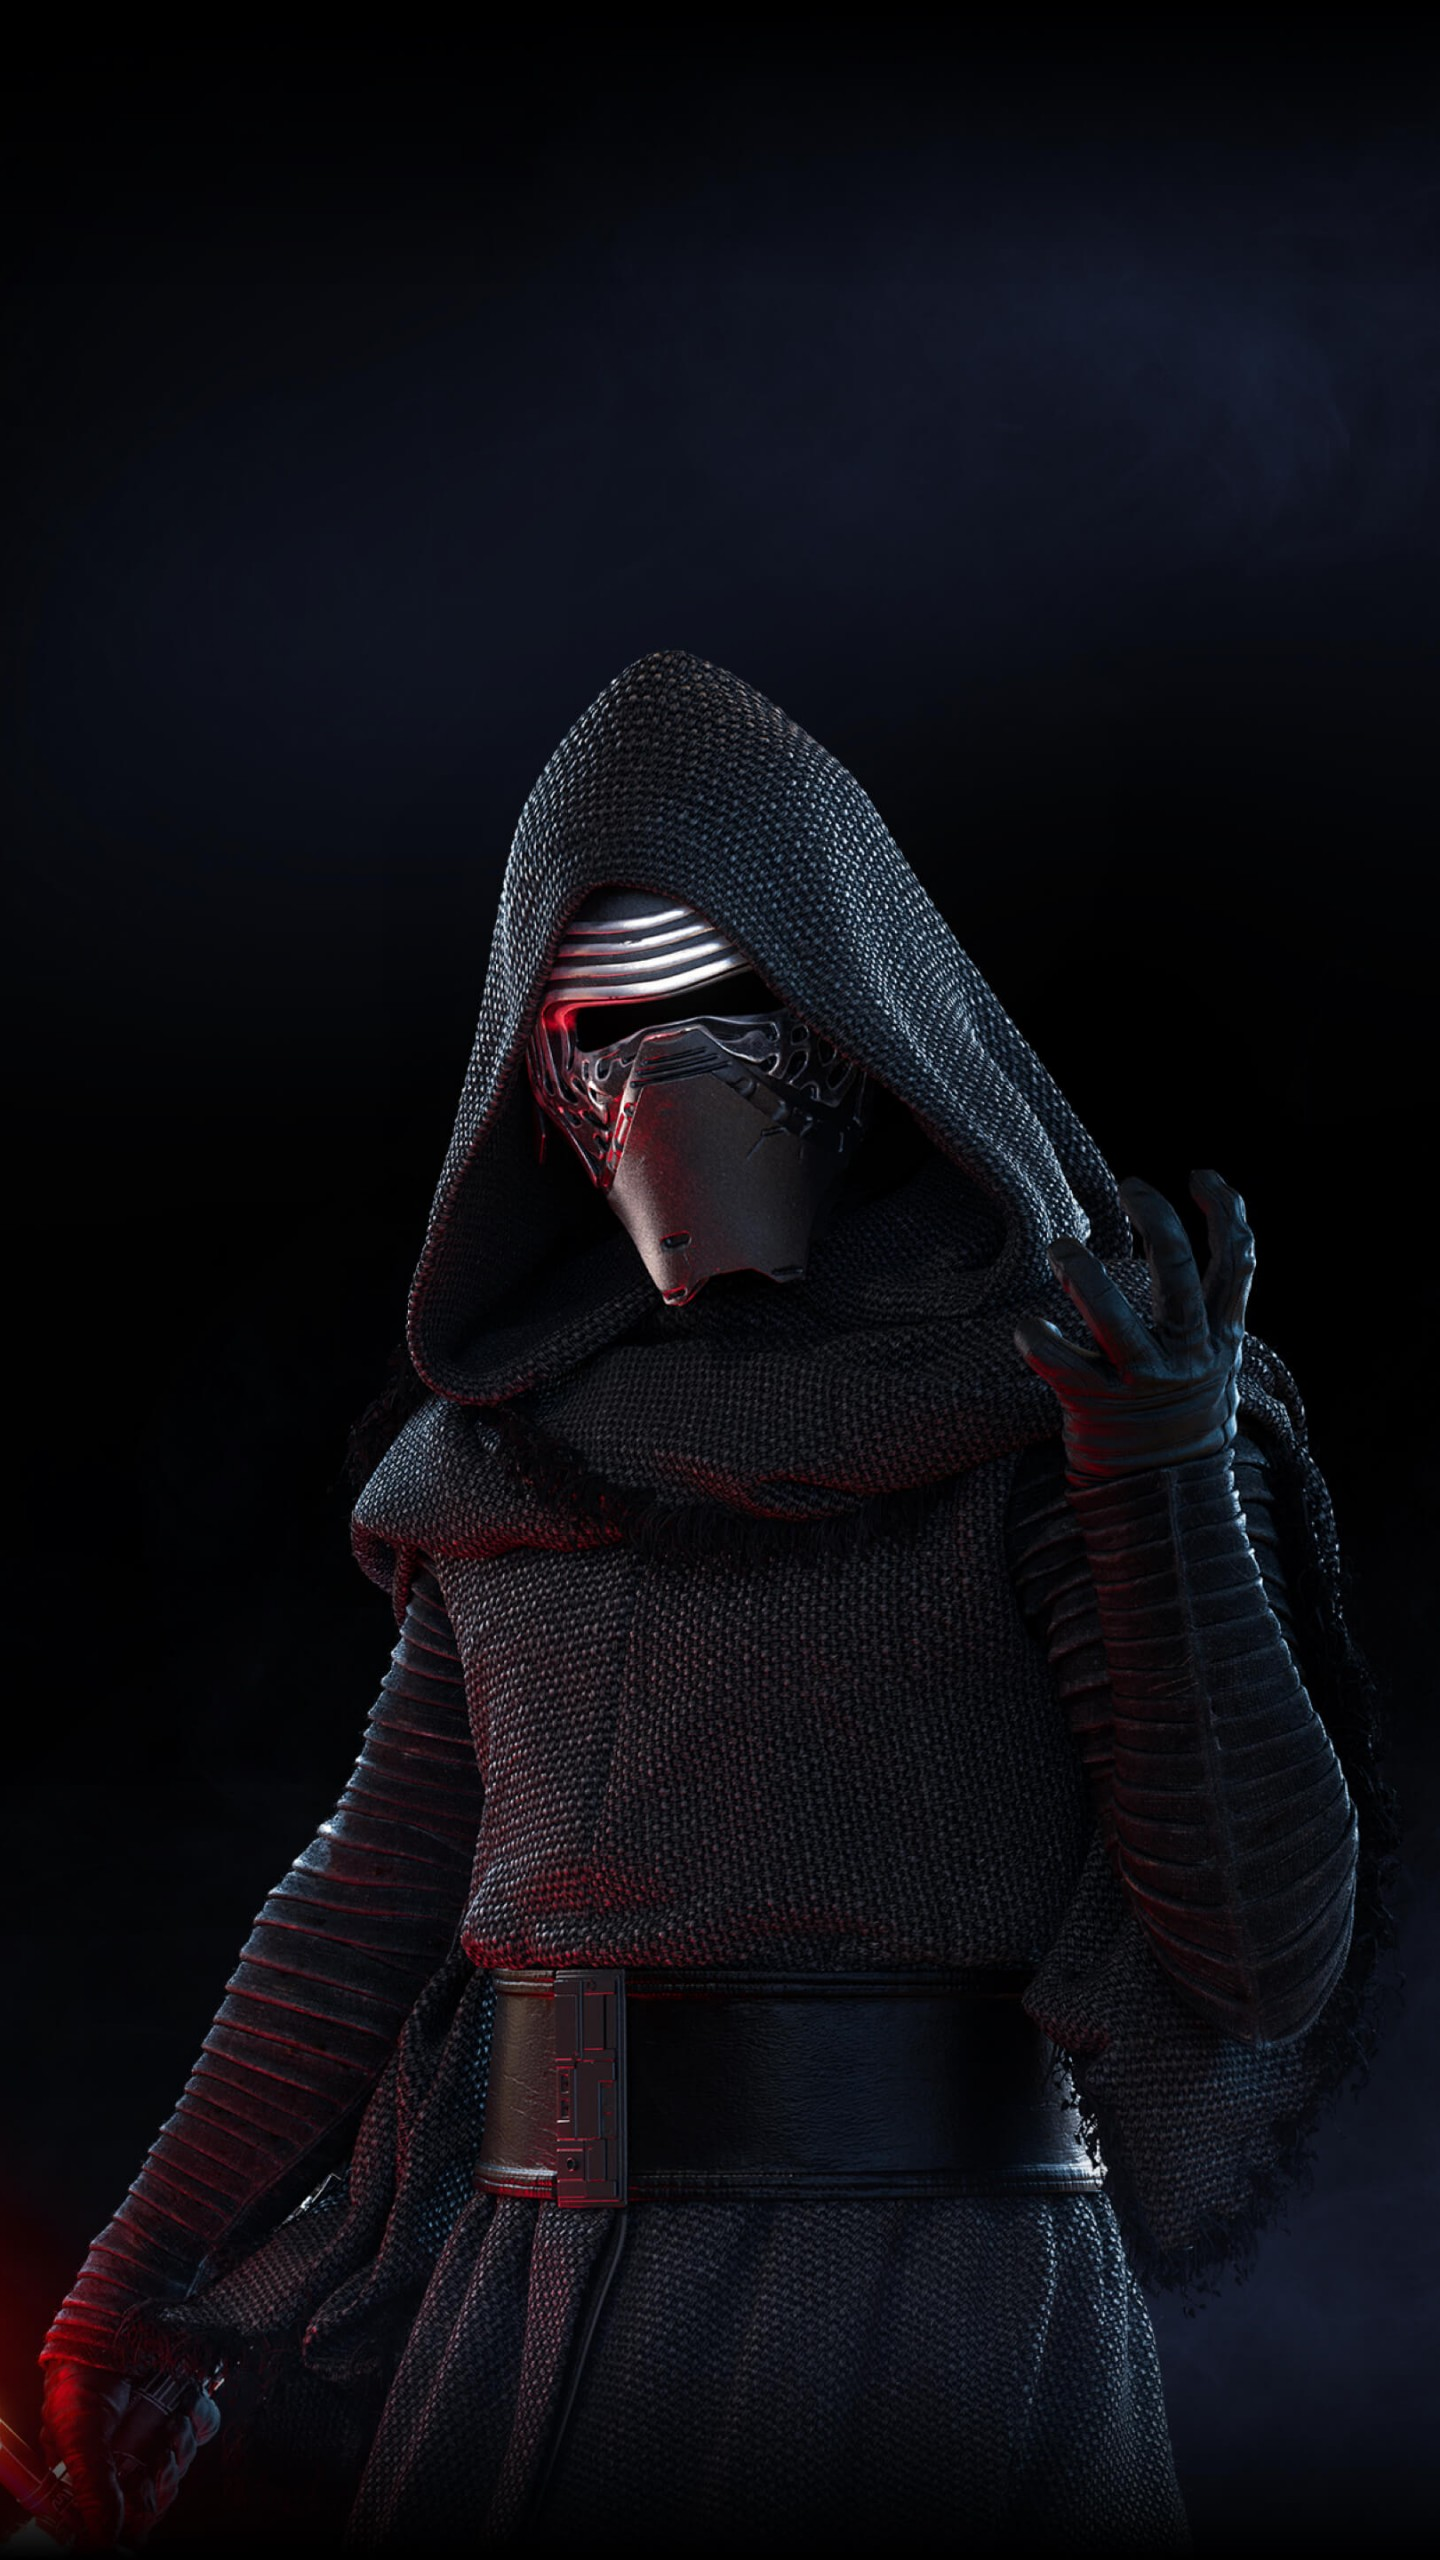 Kylo Ren Wallpaper 1920x1080 Posted By Sarah Simpson